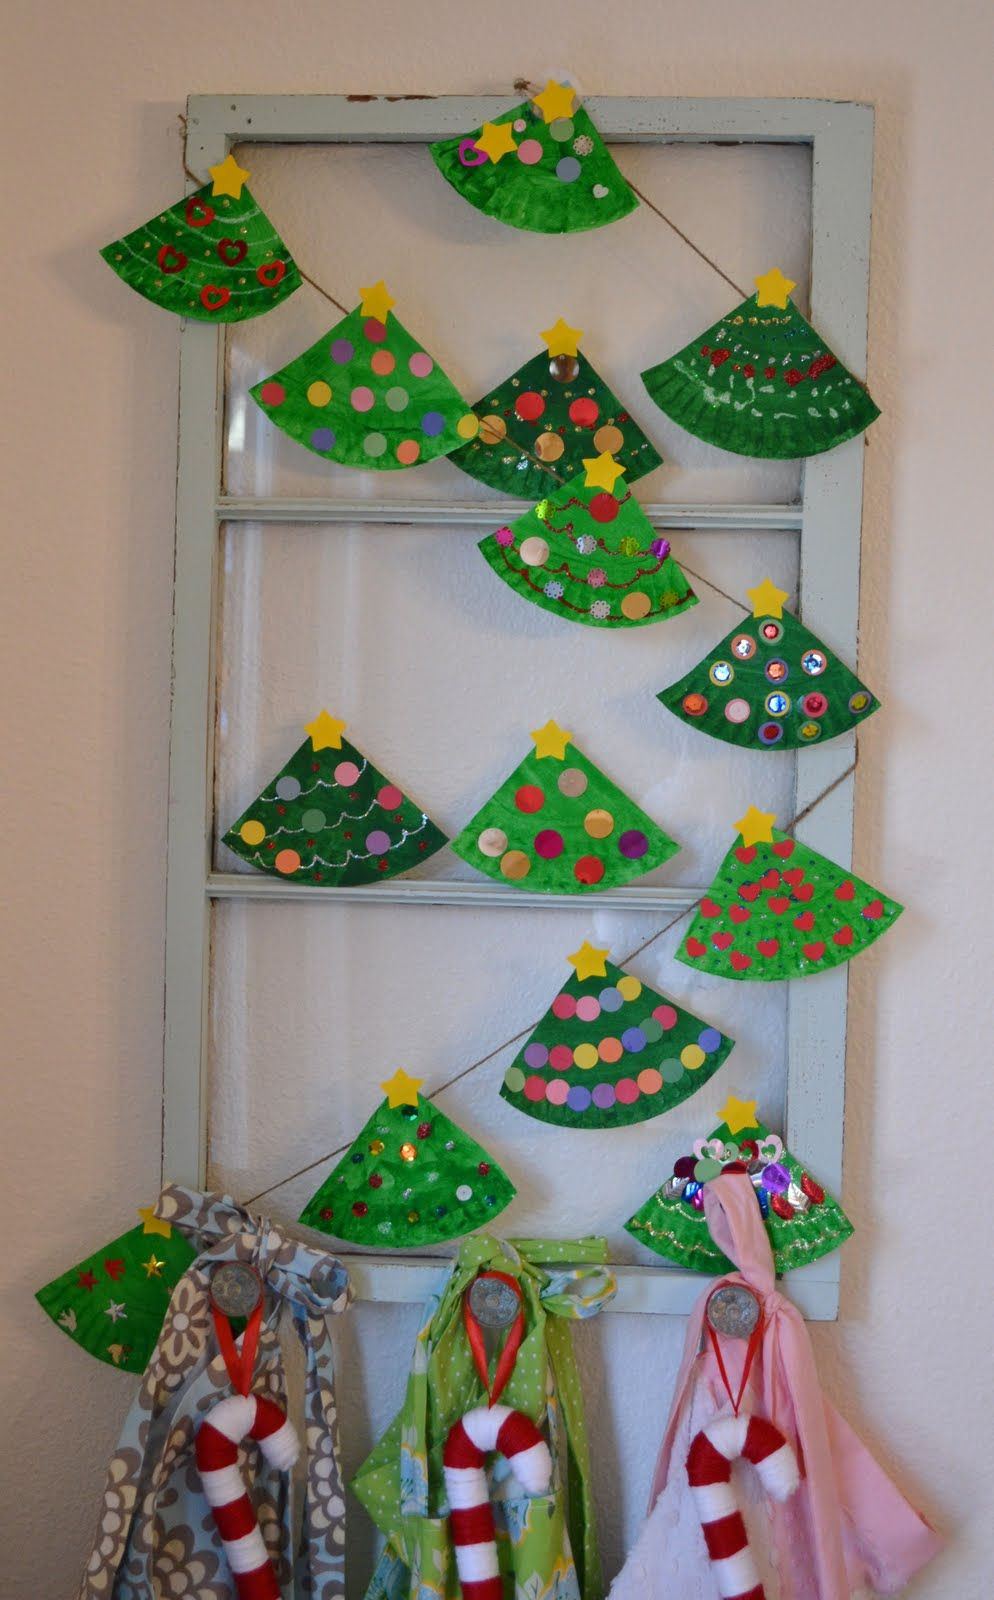 Real Life, One Day at a Time: paper plate Christmas tree garland #sunflowerchristmastree